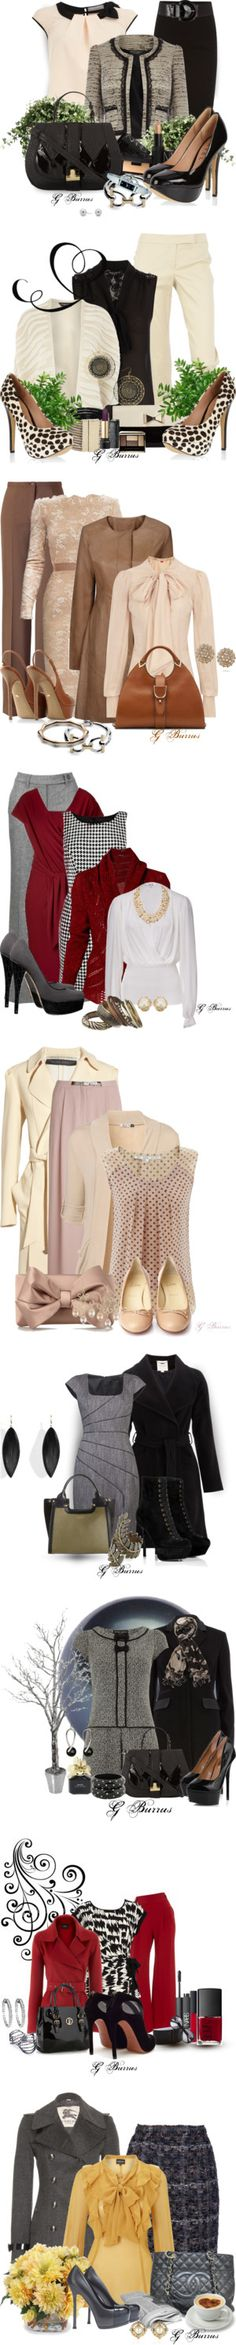 """Business Attire."" by gaburrus on Polyvore"